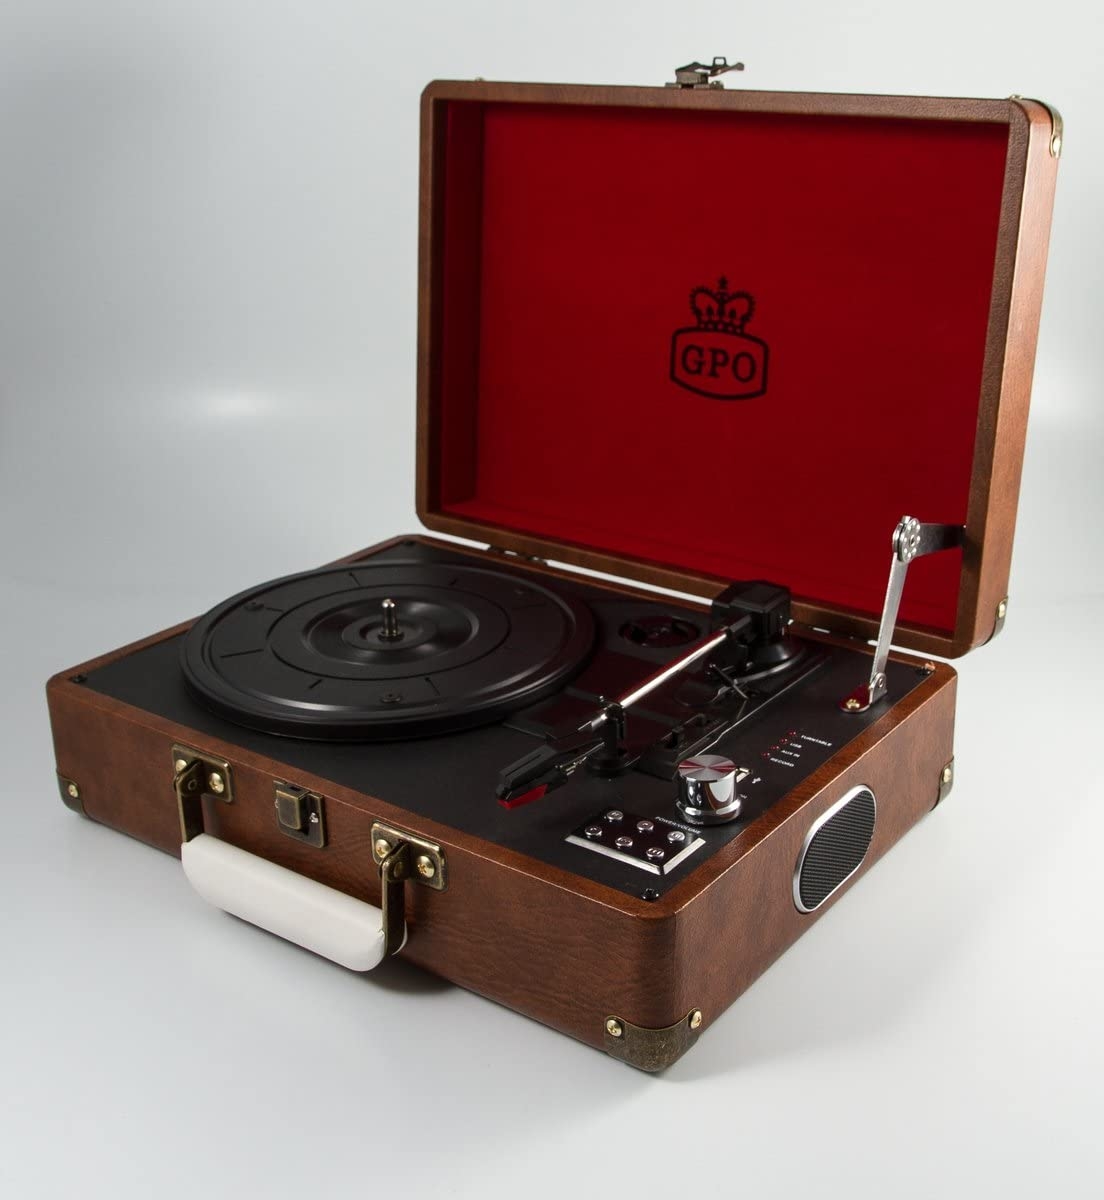 GPO Attache Briefcase-Style Record Player Vinyl Turntable with Built-in Speakers - Vintage Brown